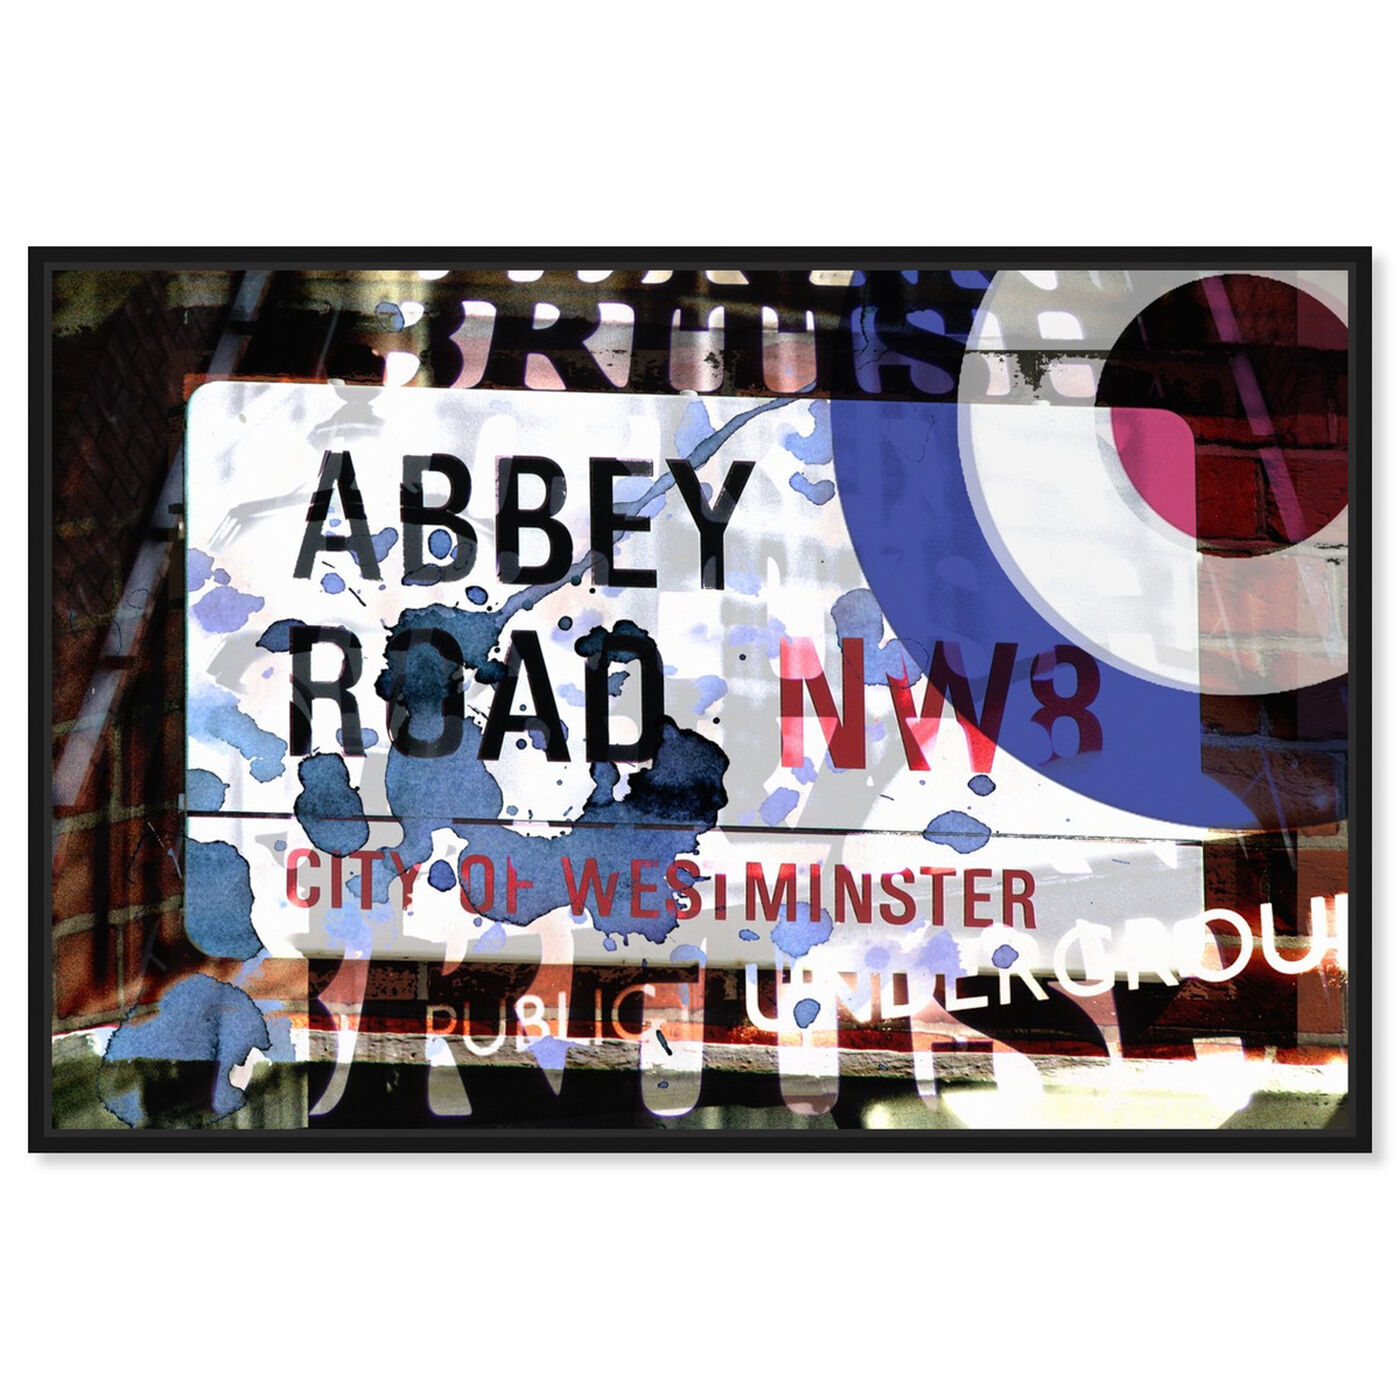 Front view of Abbey Road featuring advertising and posters art.